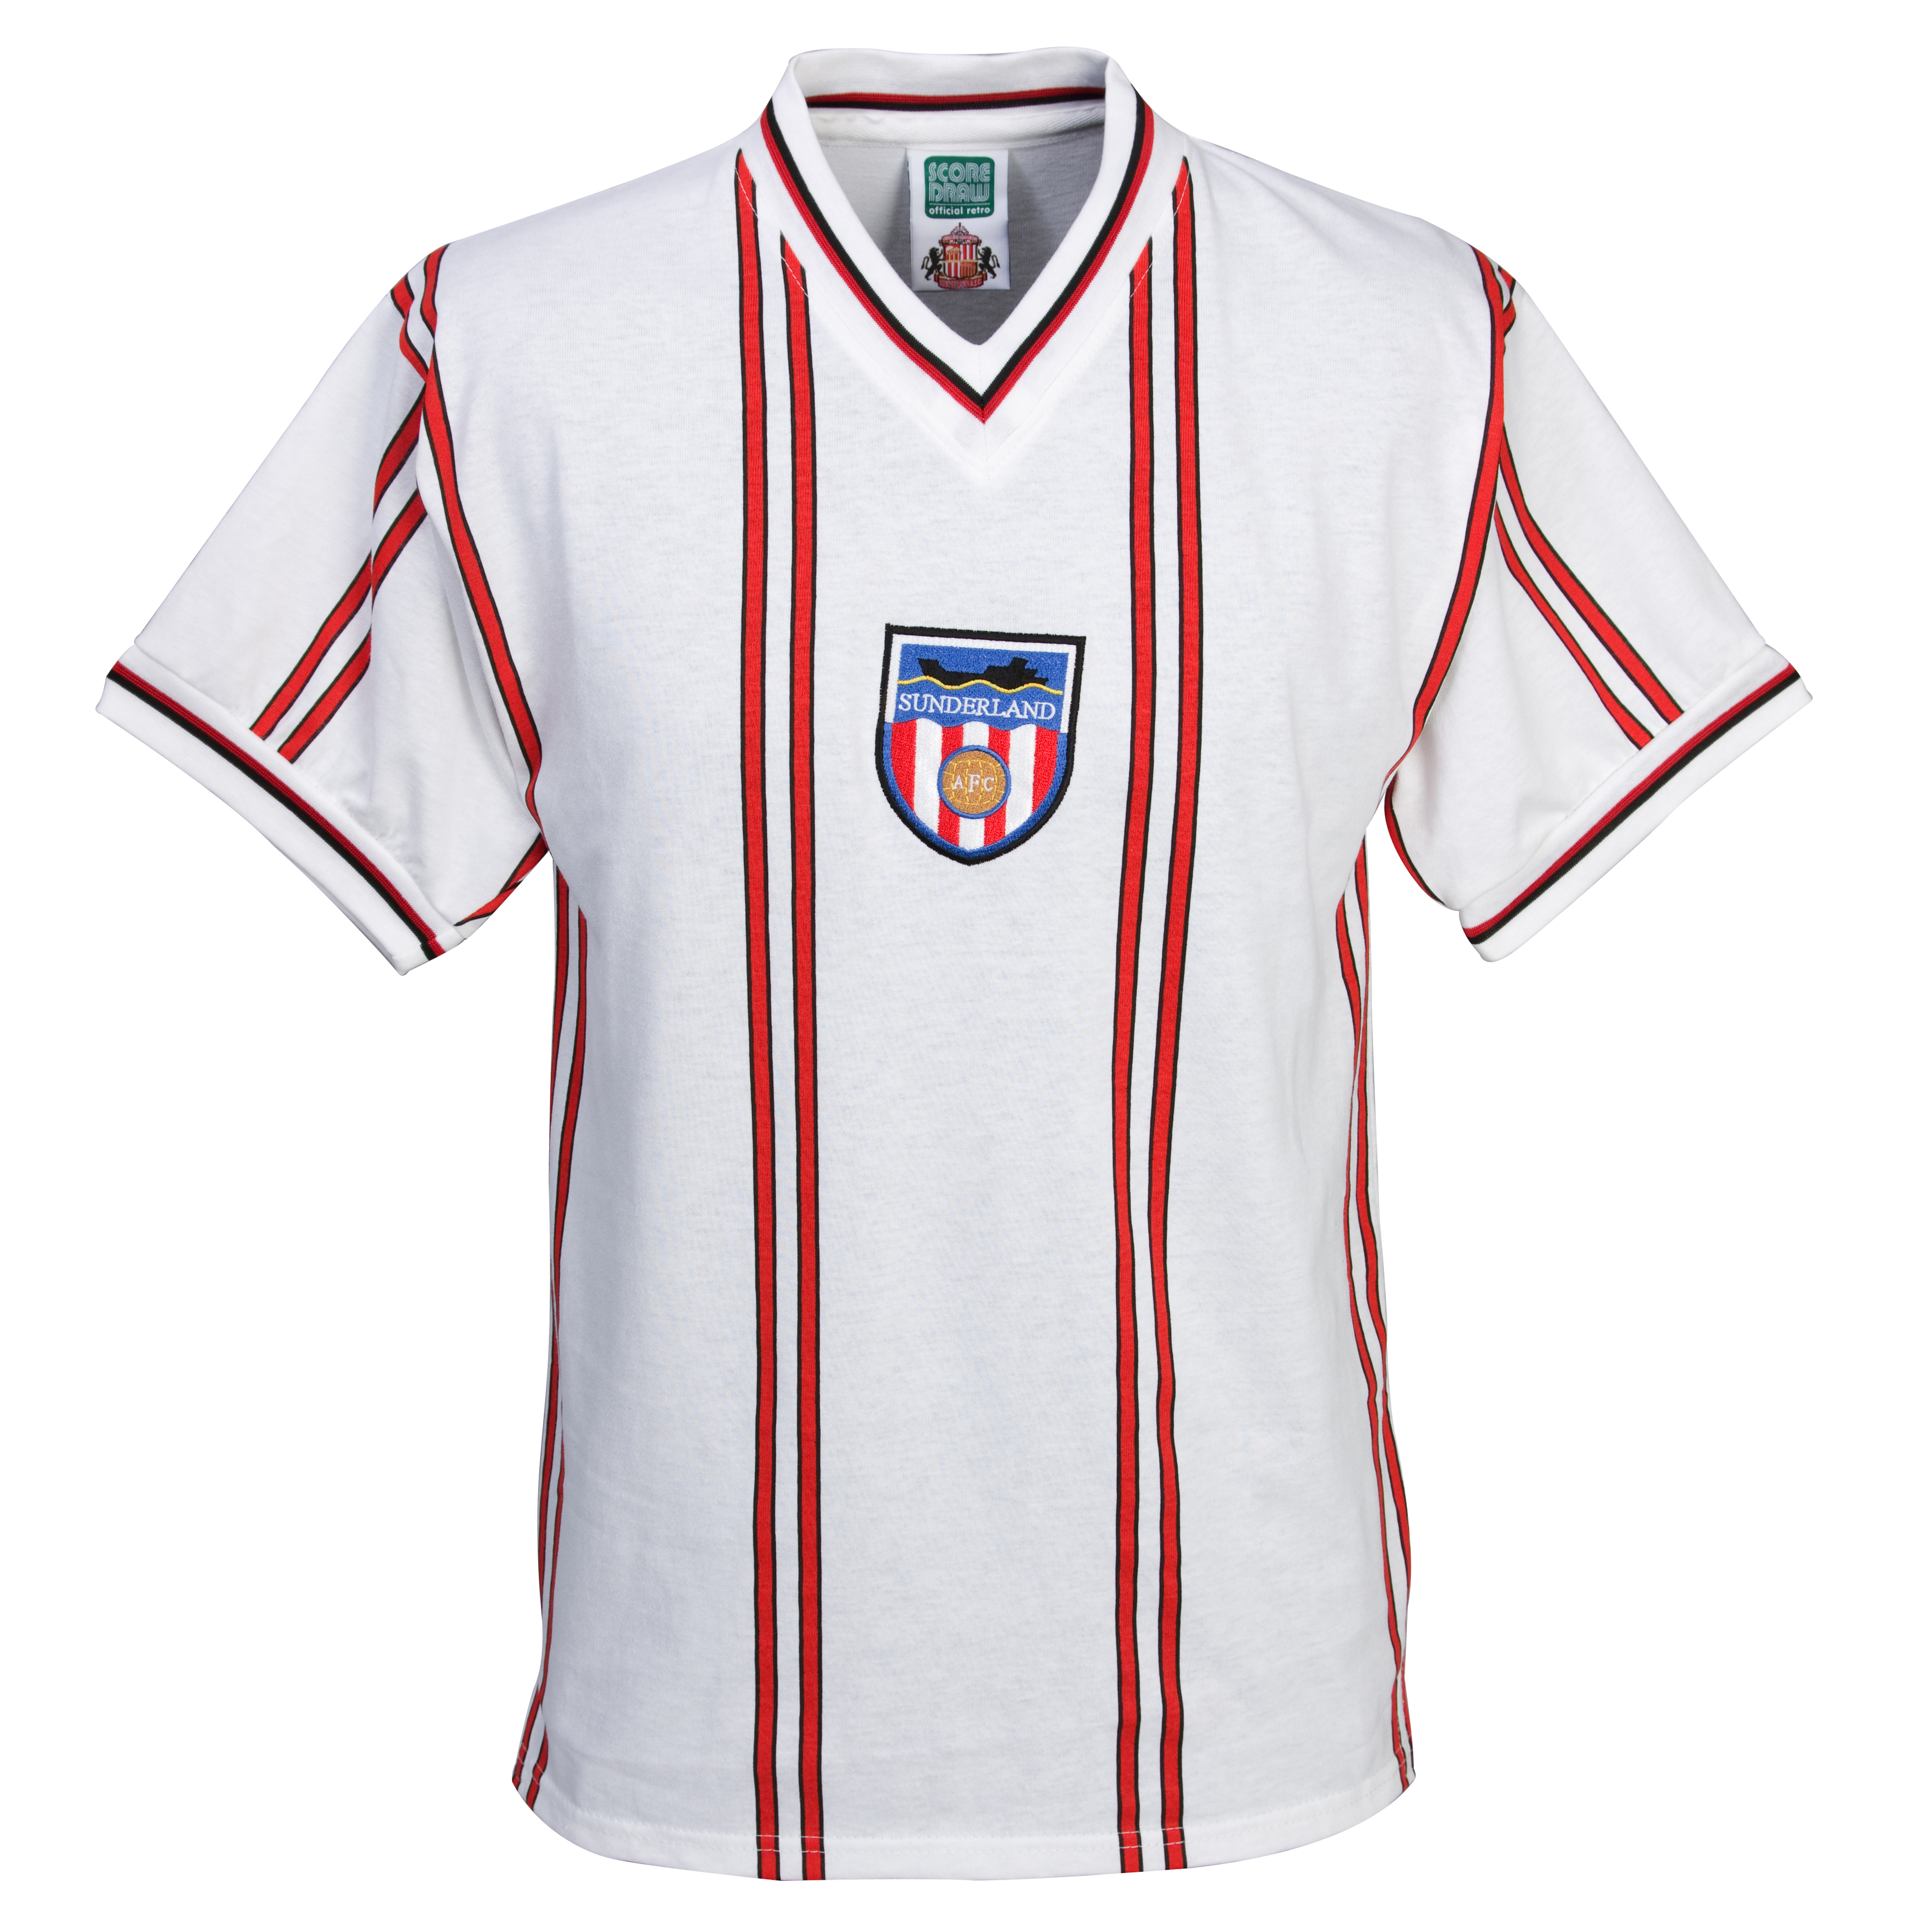 Sunderland 1982 Retro Shirt